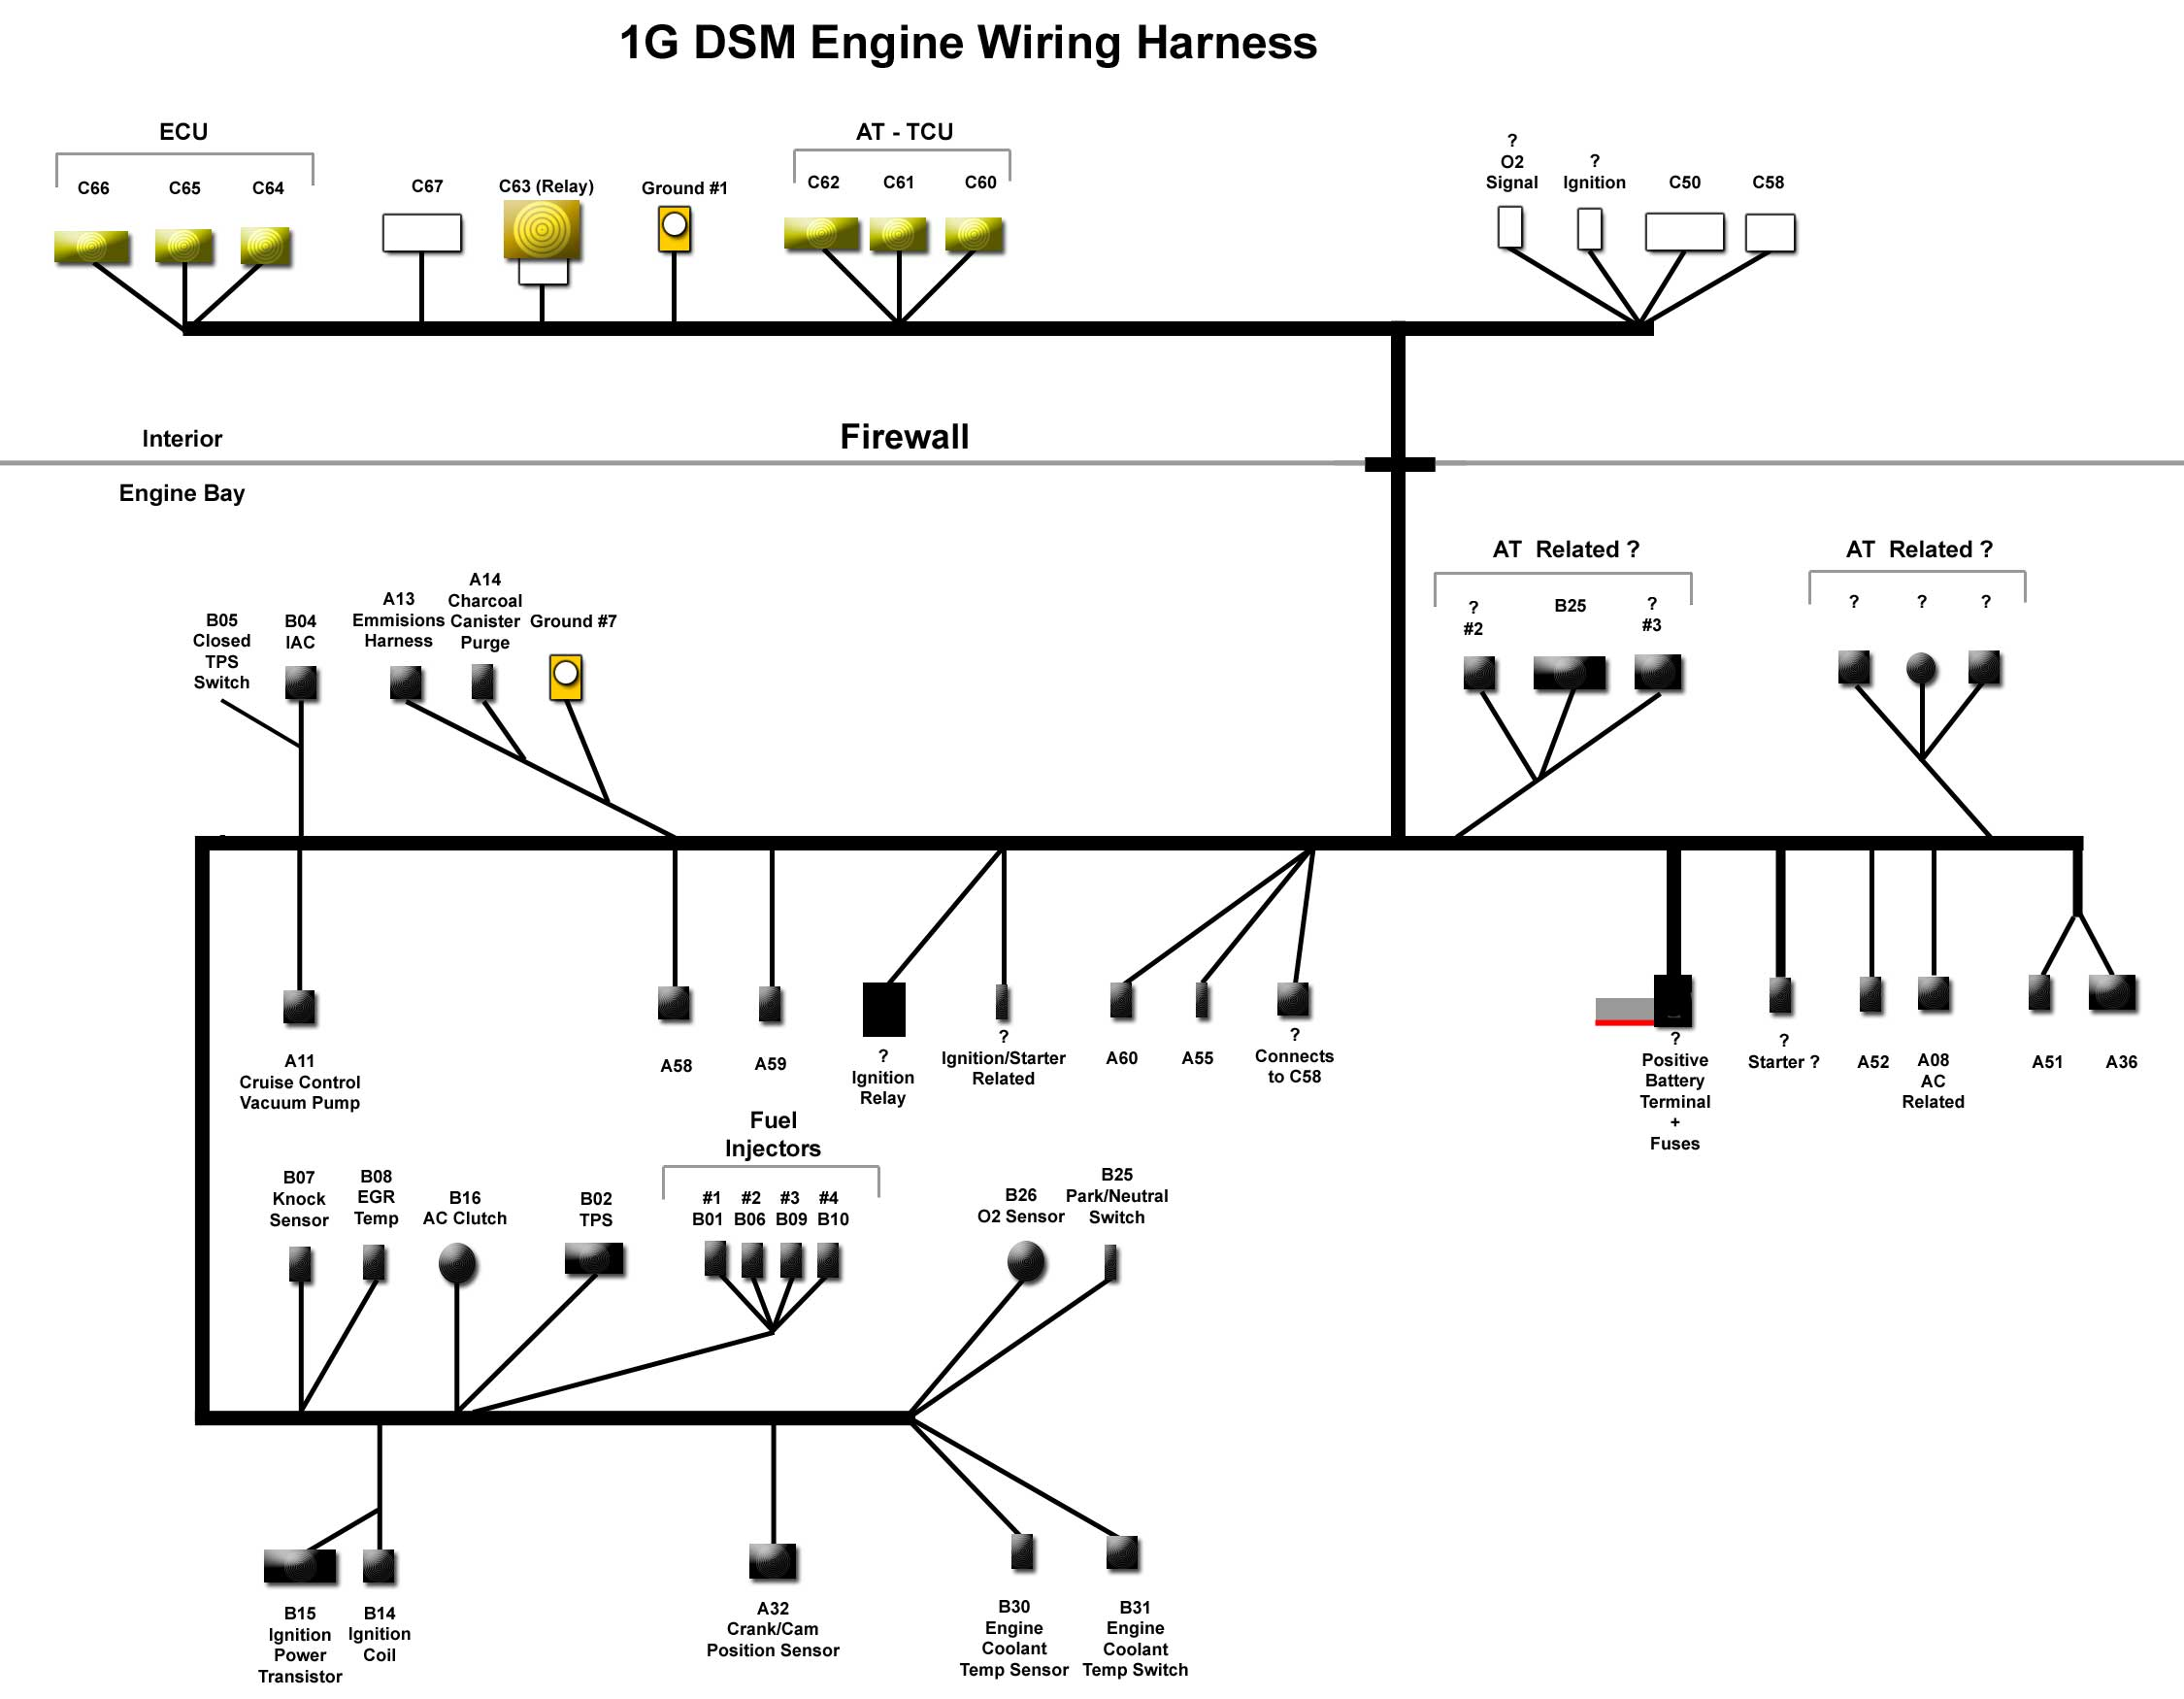 1G DSM EngineHarness 1gb dsm 4g63 turbo wiring harness diagram wiring harness diagram at gsmportal.co